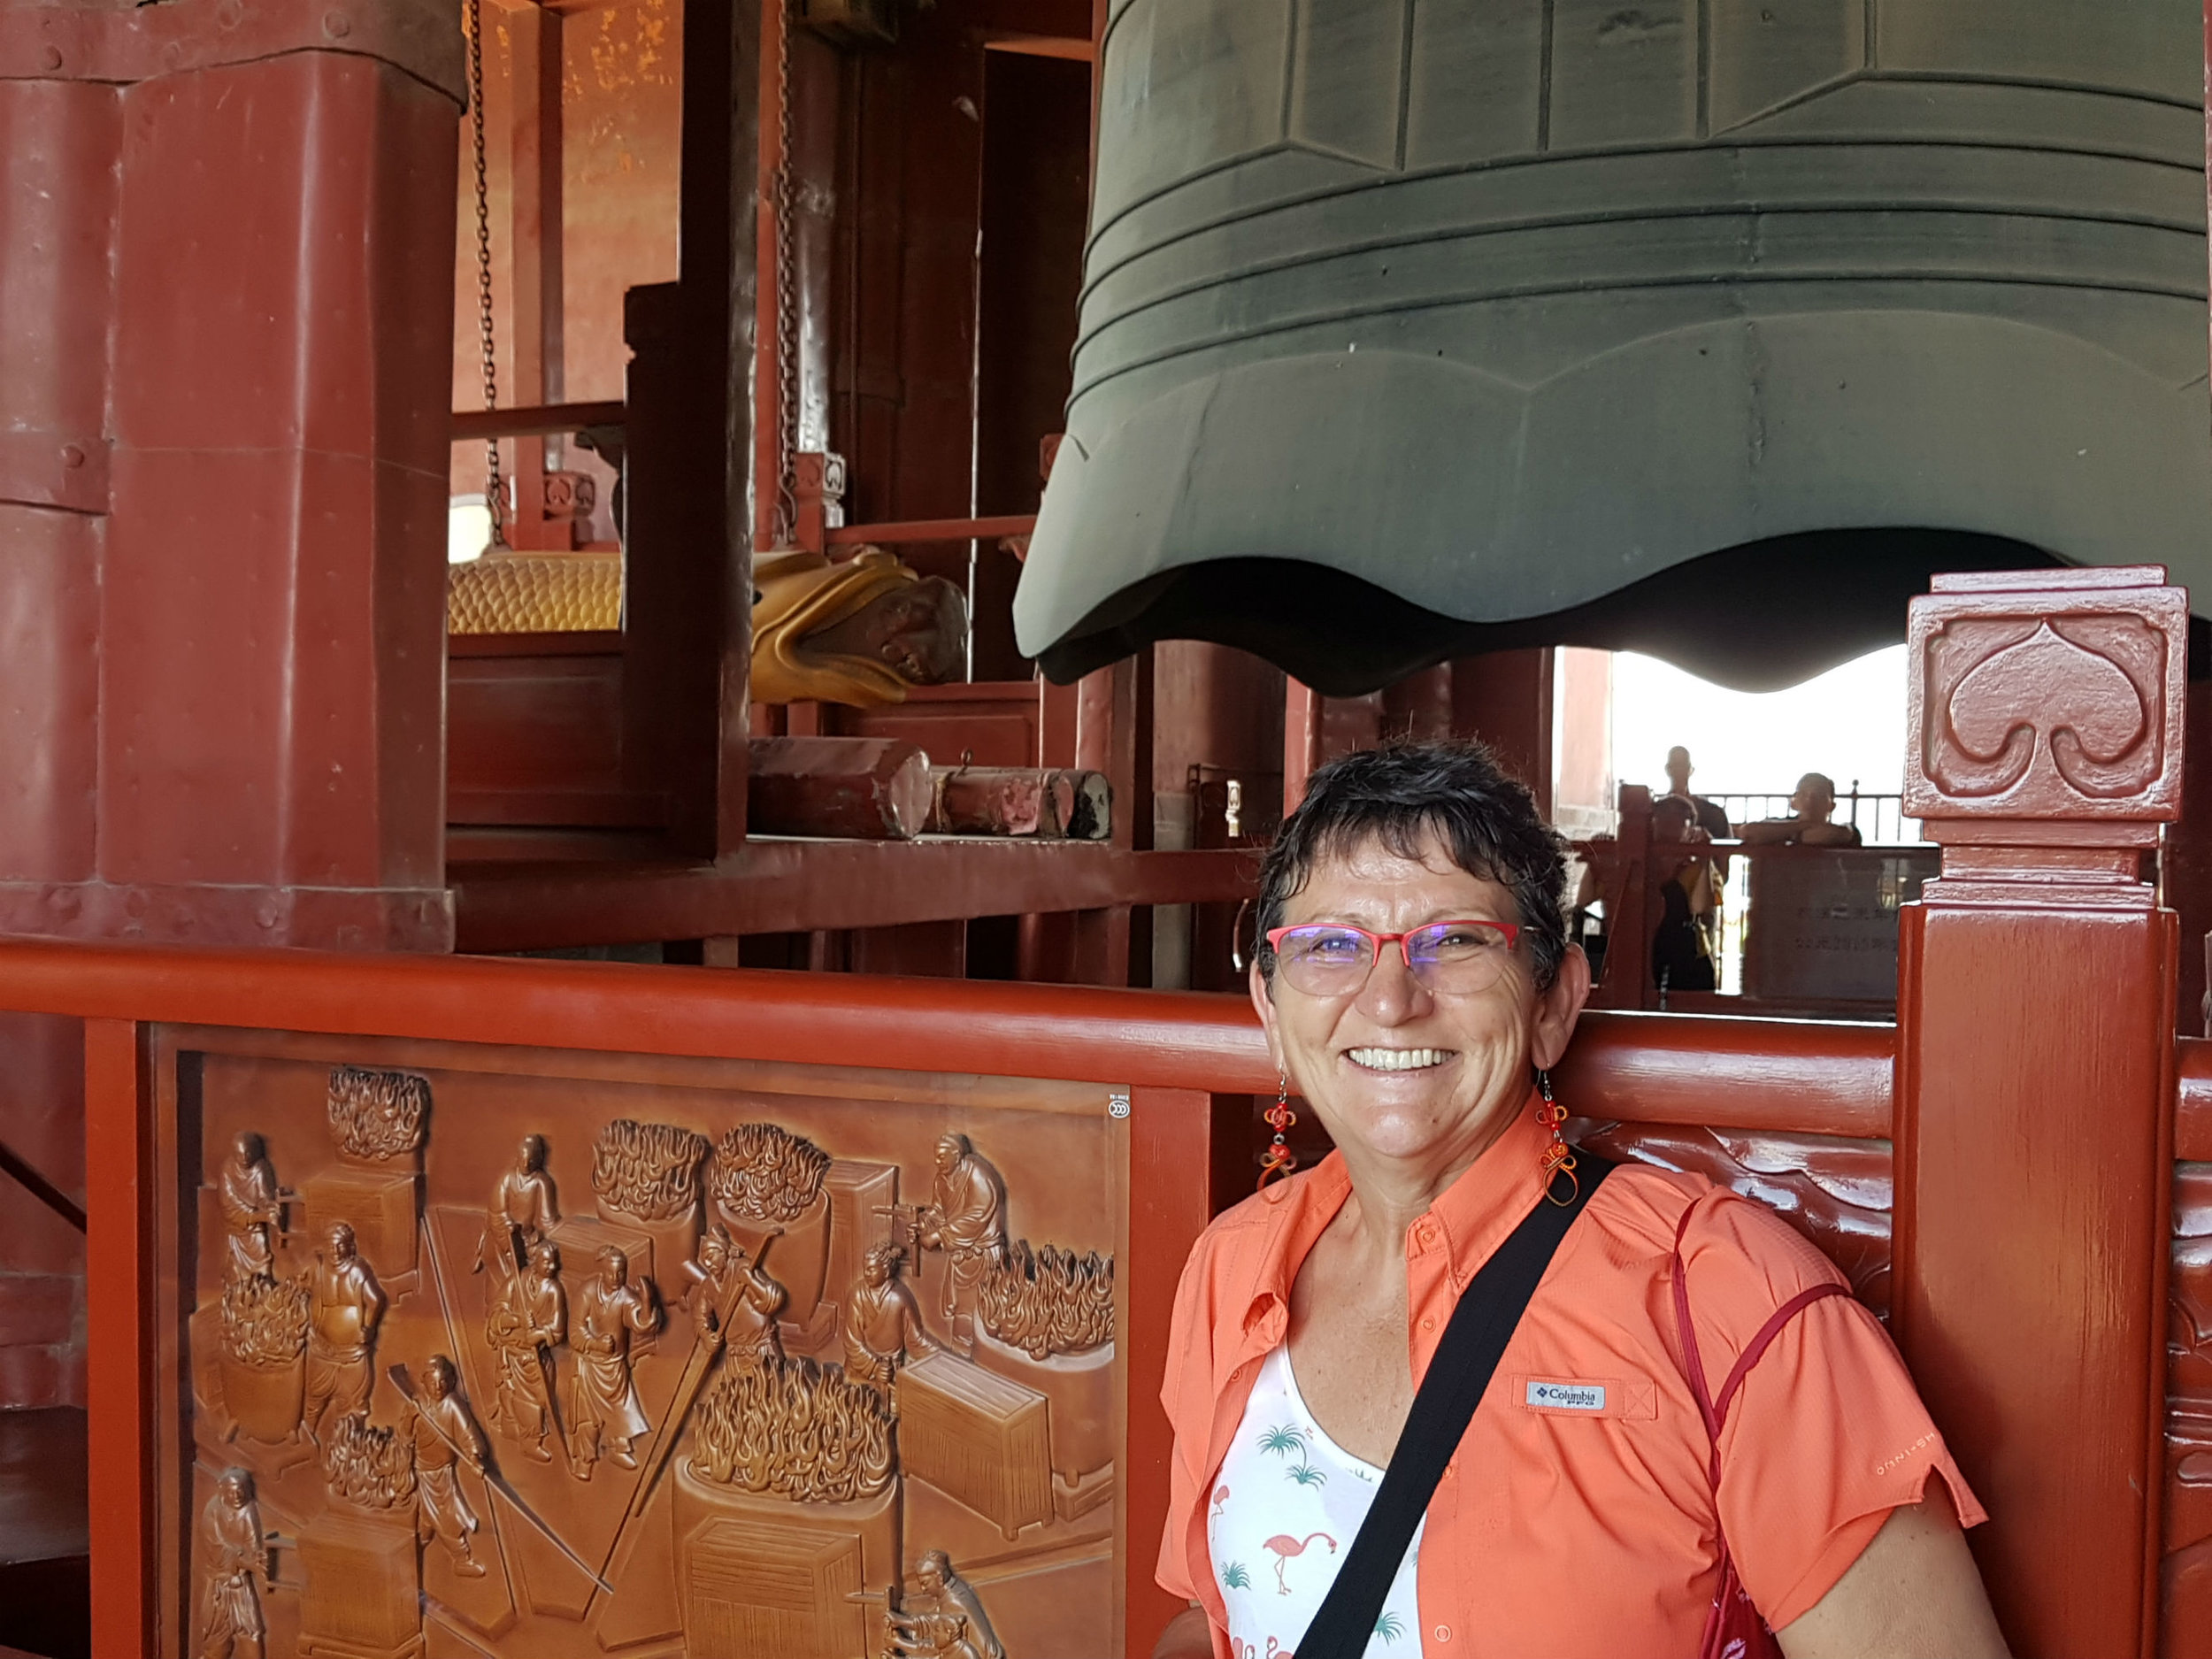 Inside the ancient drum-bell tower in Beijing